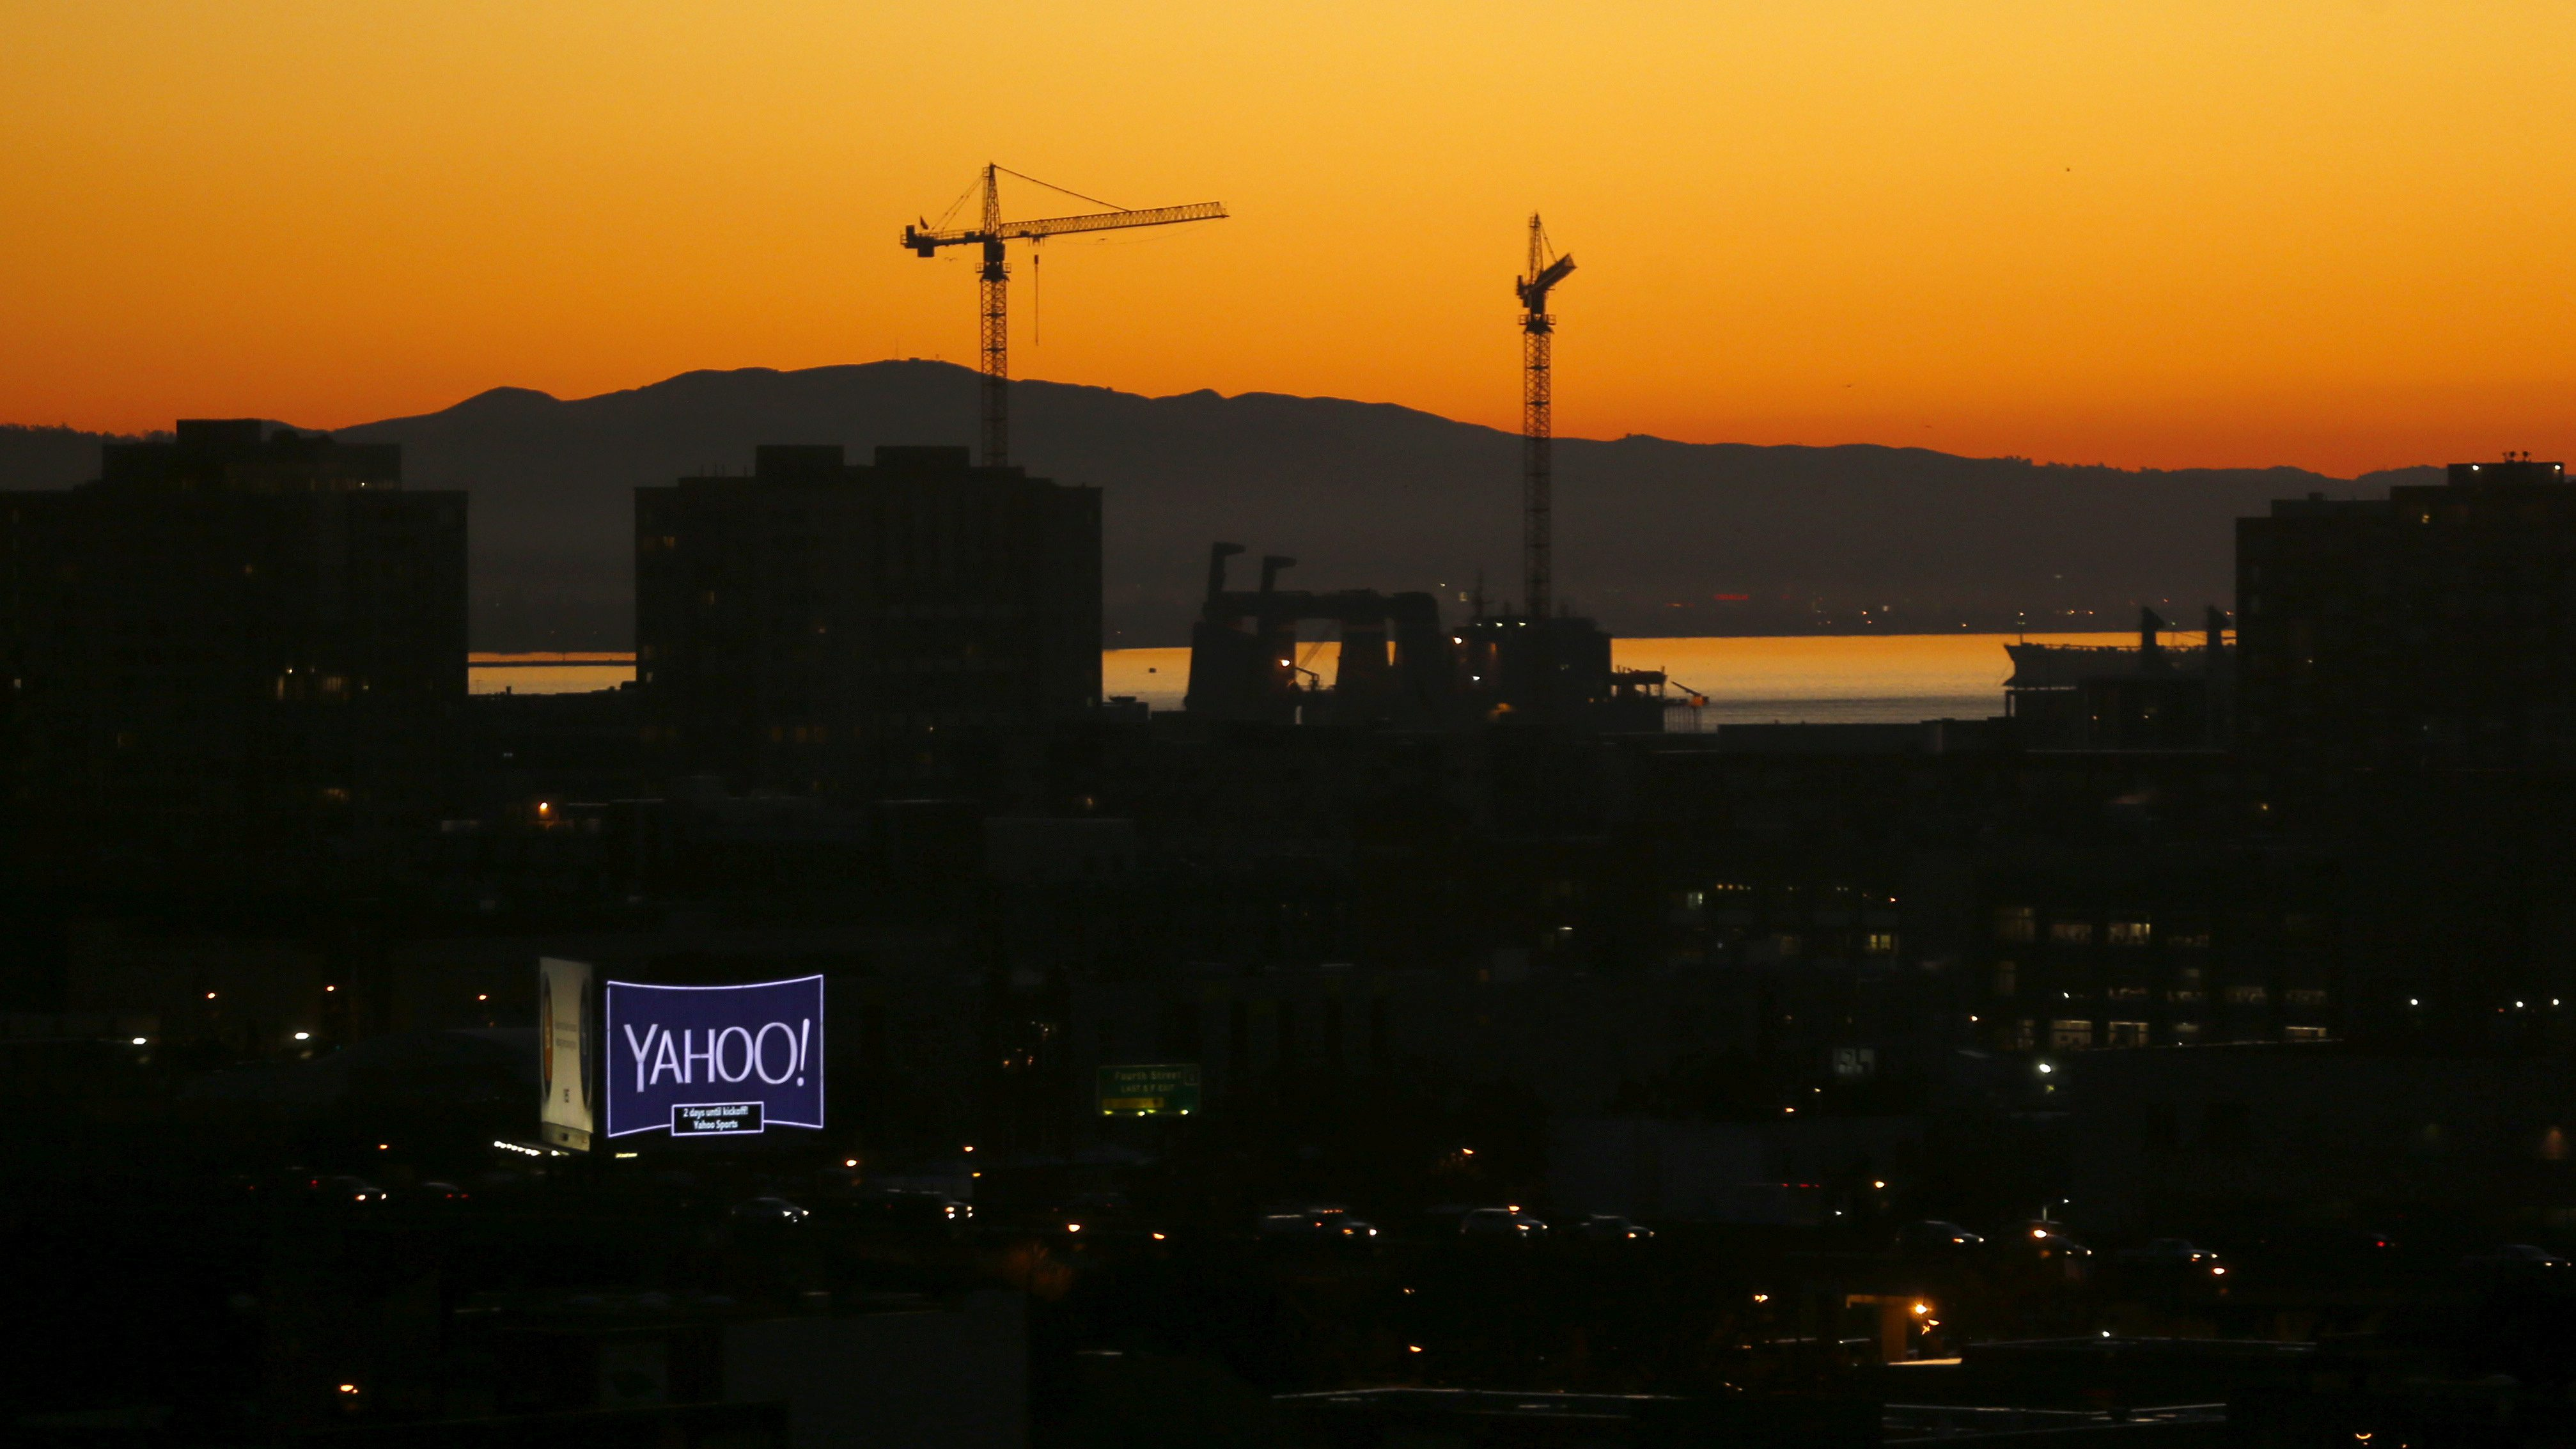 A sign advertising the internet company Yahoo is pictured at sun rise in down town San Francisco, California February 5, 2016.